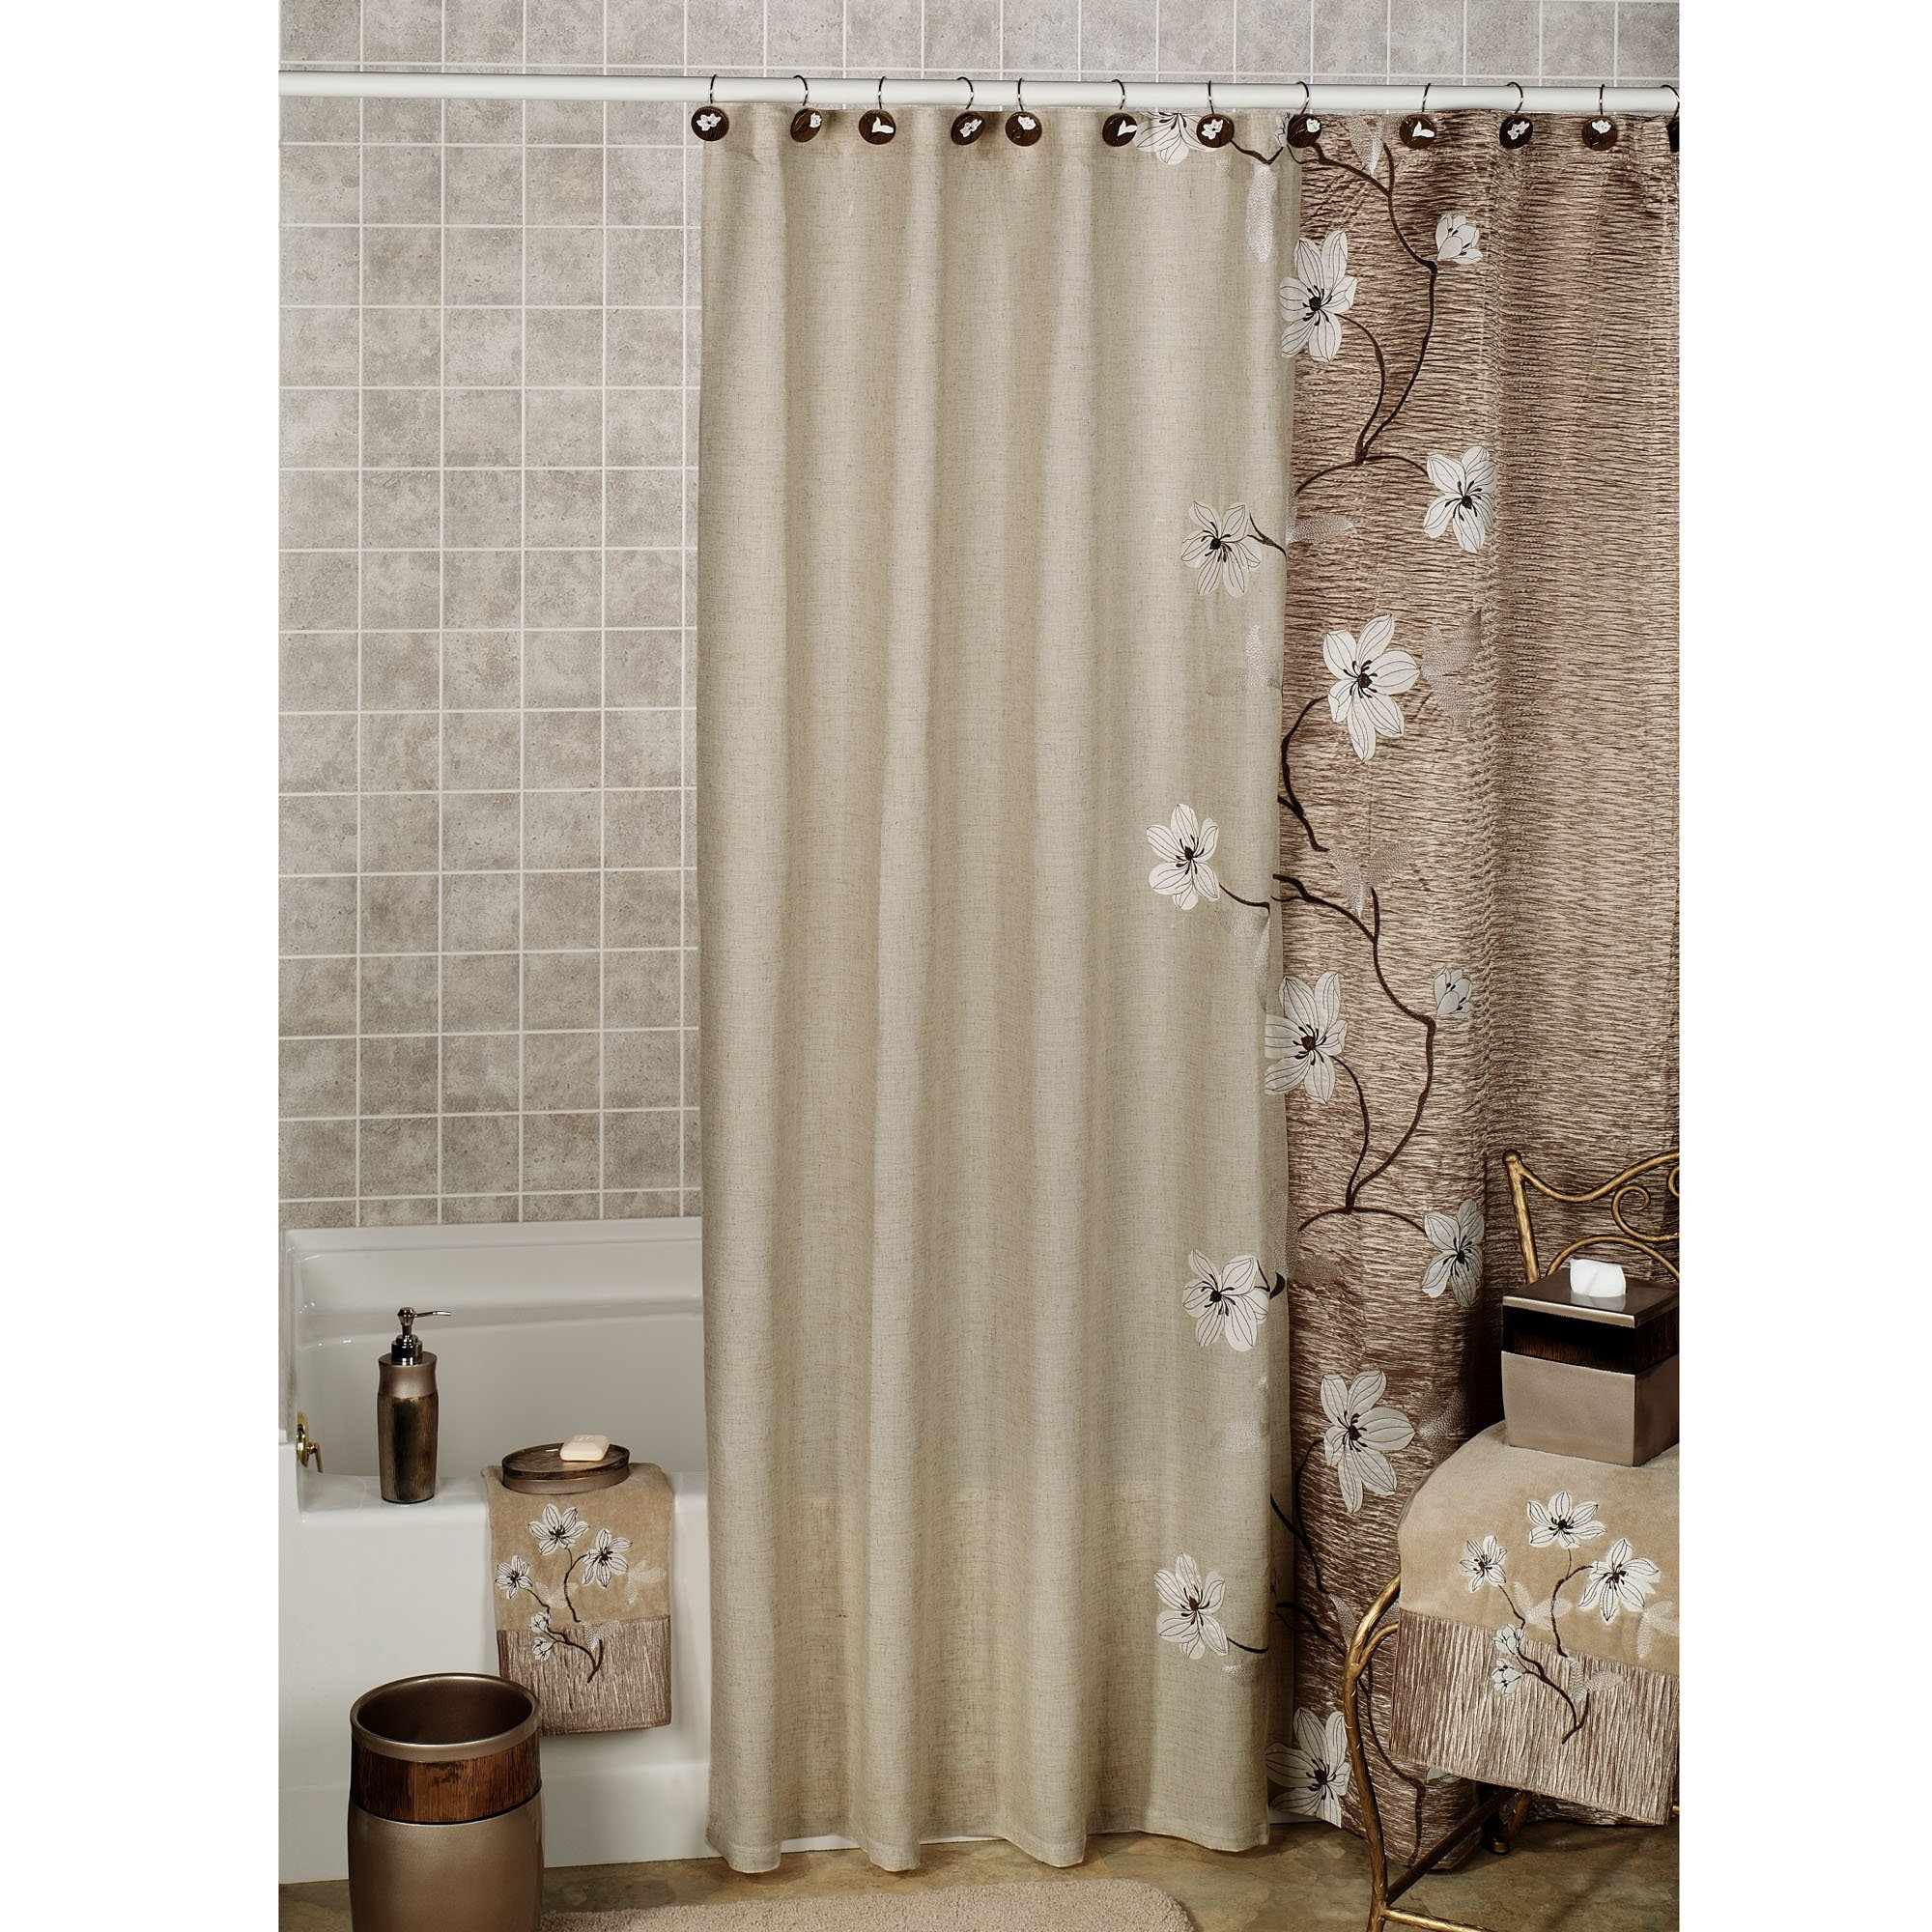 Bathroom Shower Curtain And Window Curtain Sets • Shower Curtains ...